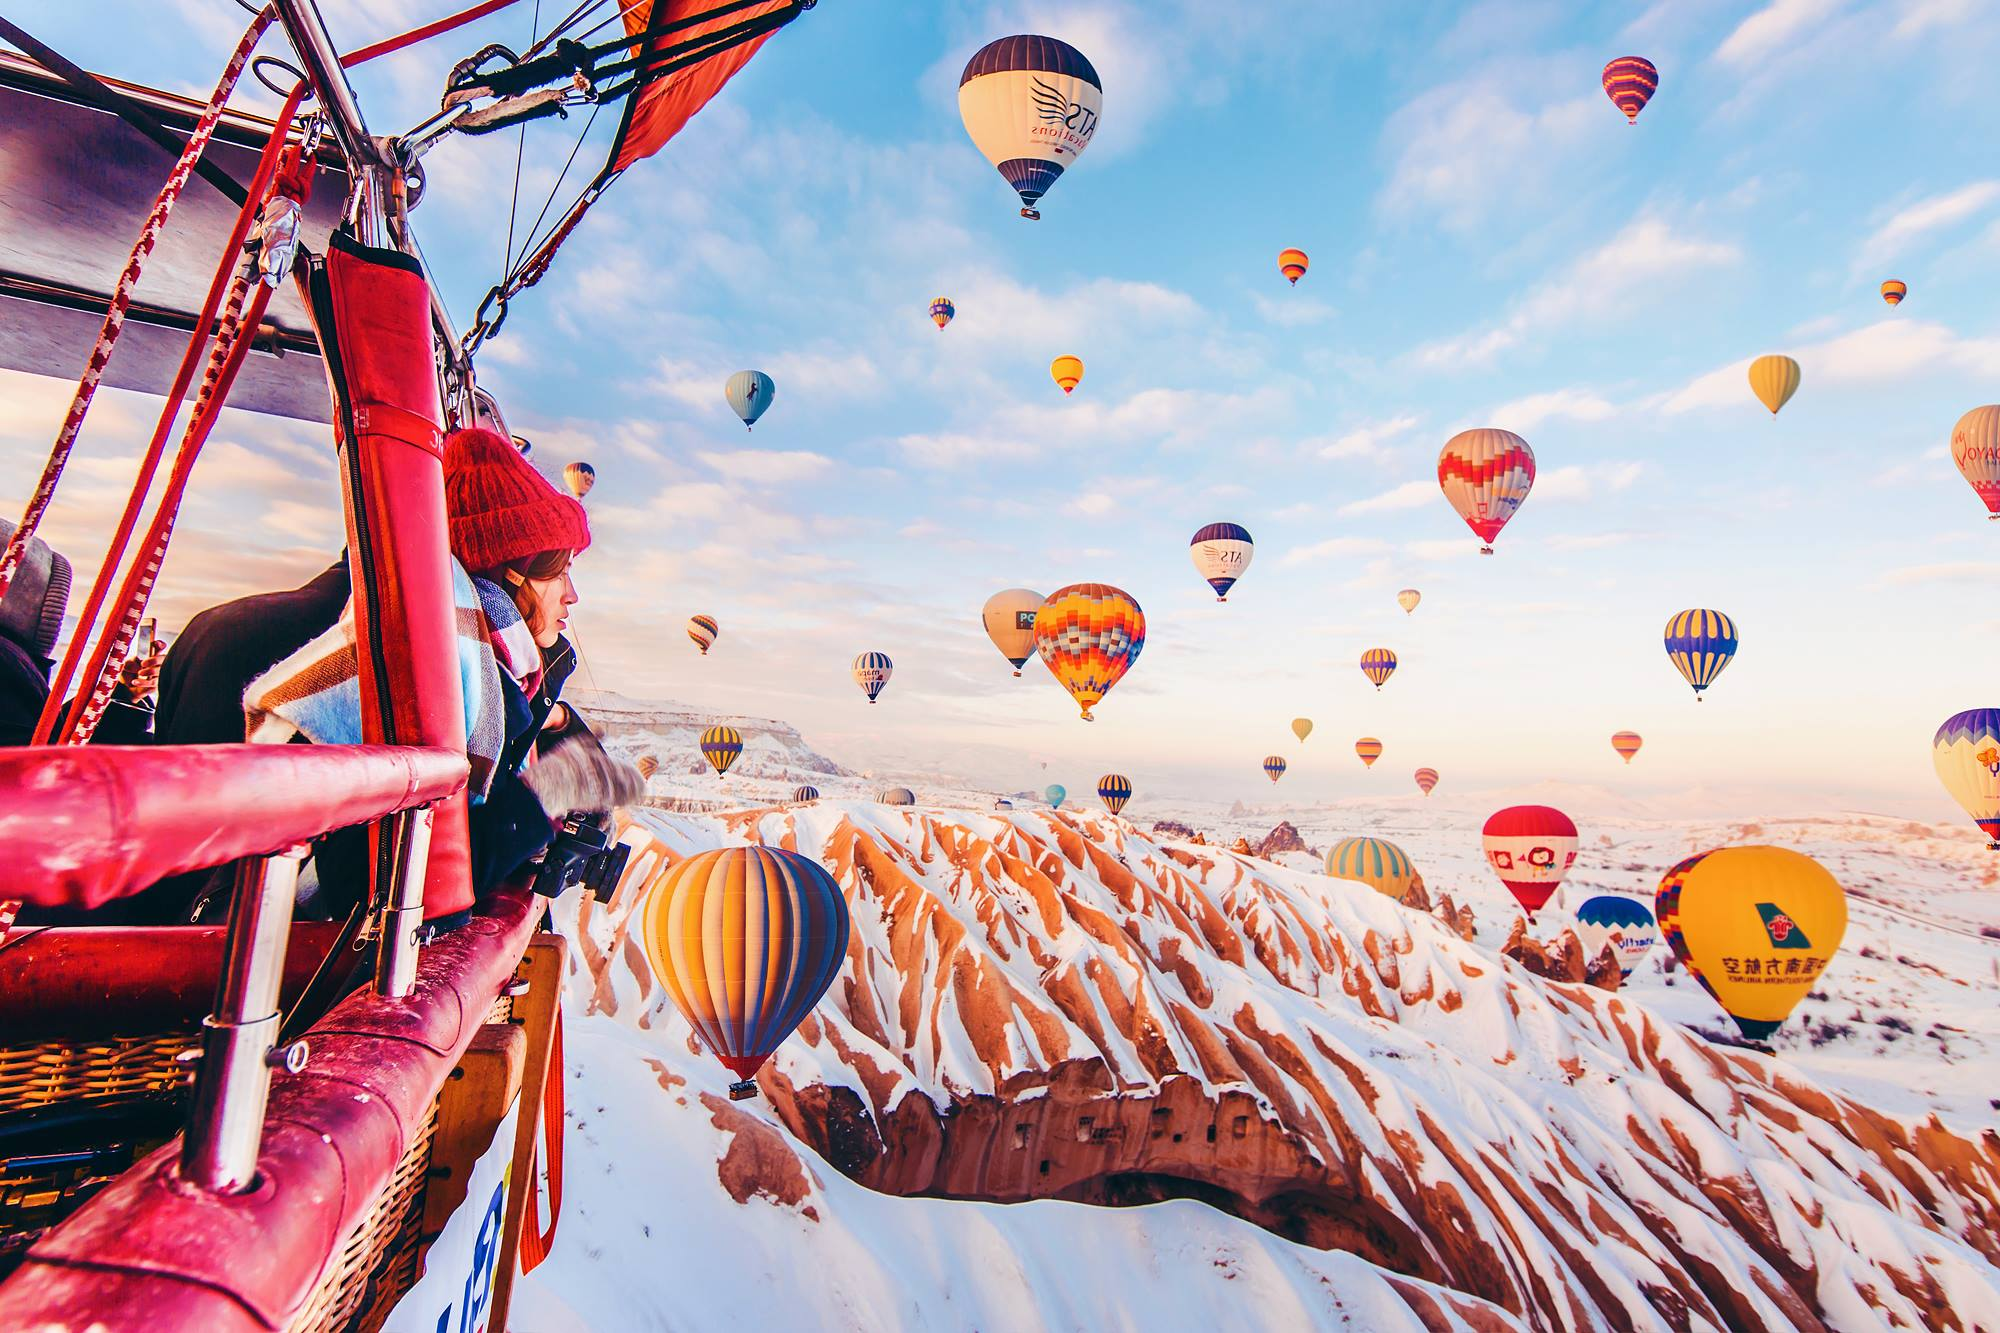 A breath-taking series of images showing the famous hot air balloons of Cappadocia - Lonely Planet Travel News. Article by James Gabriel Martin. Photographs by Kristina Makeeva